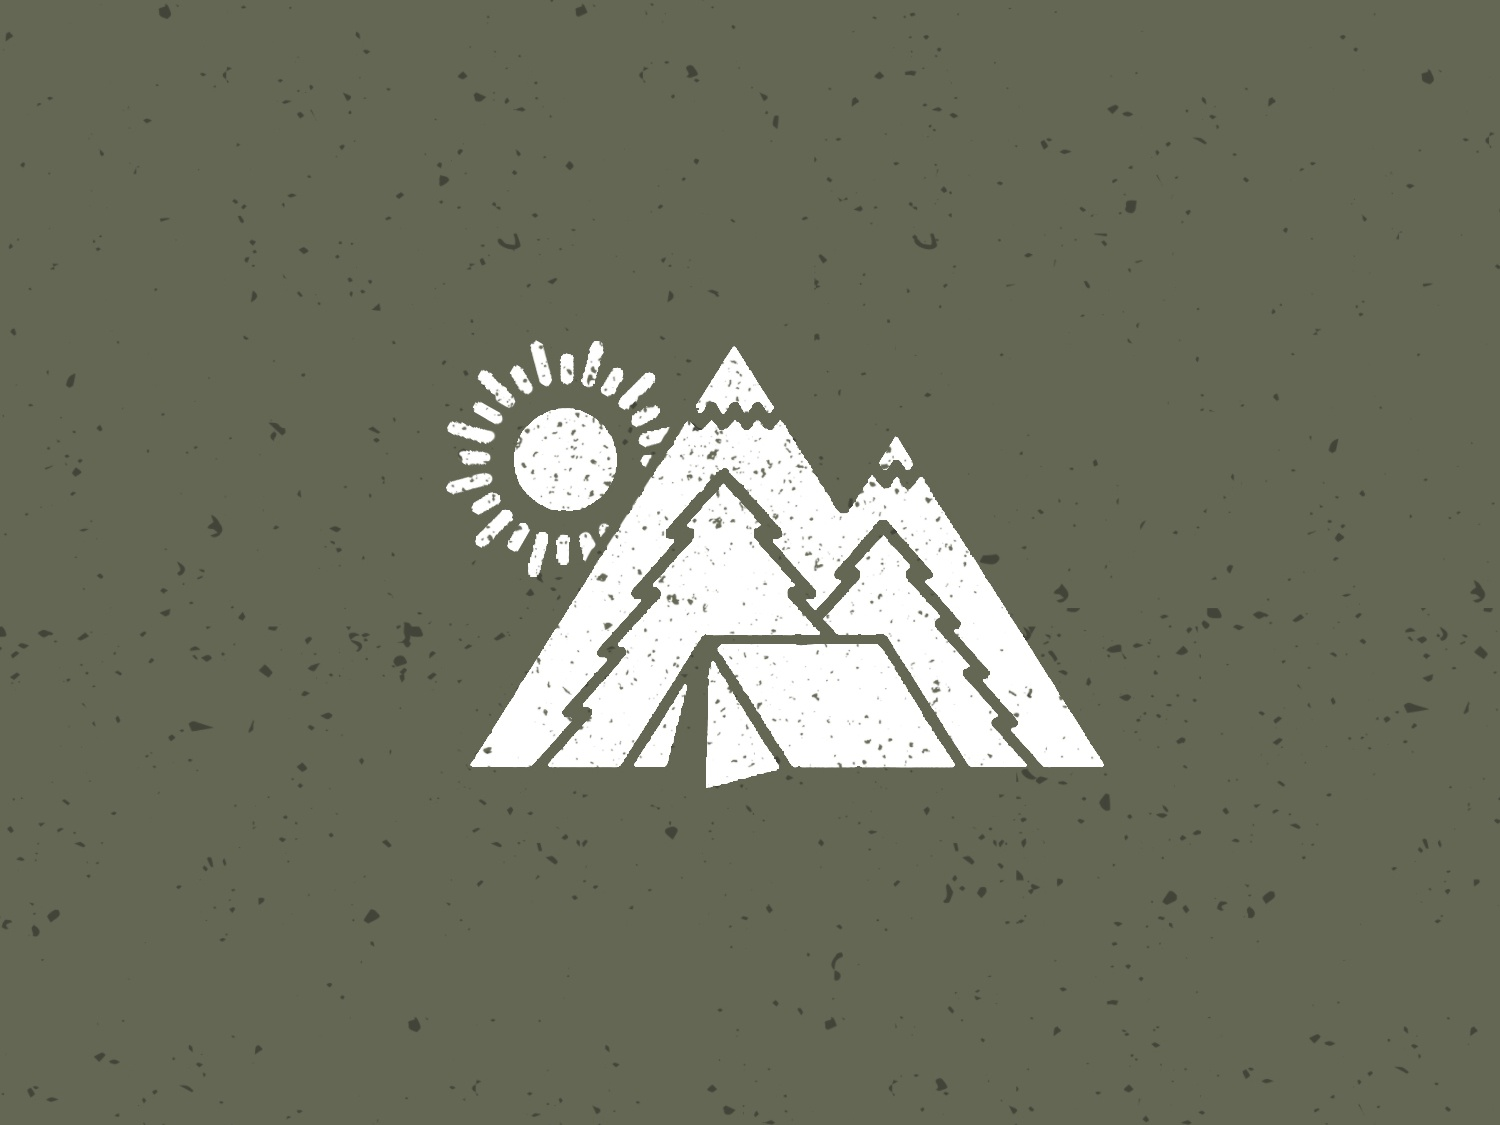 Rather be Camping tree drawing illustration scene nature logo hike wilderness mountain tent camp camping